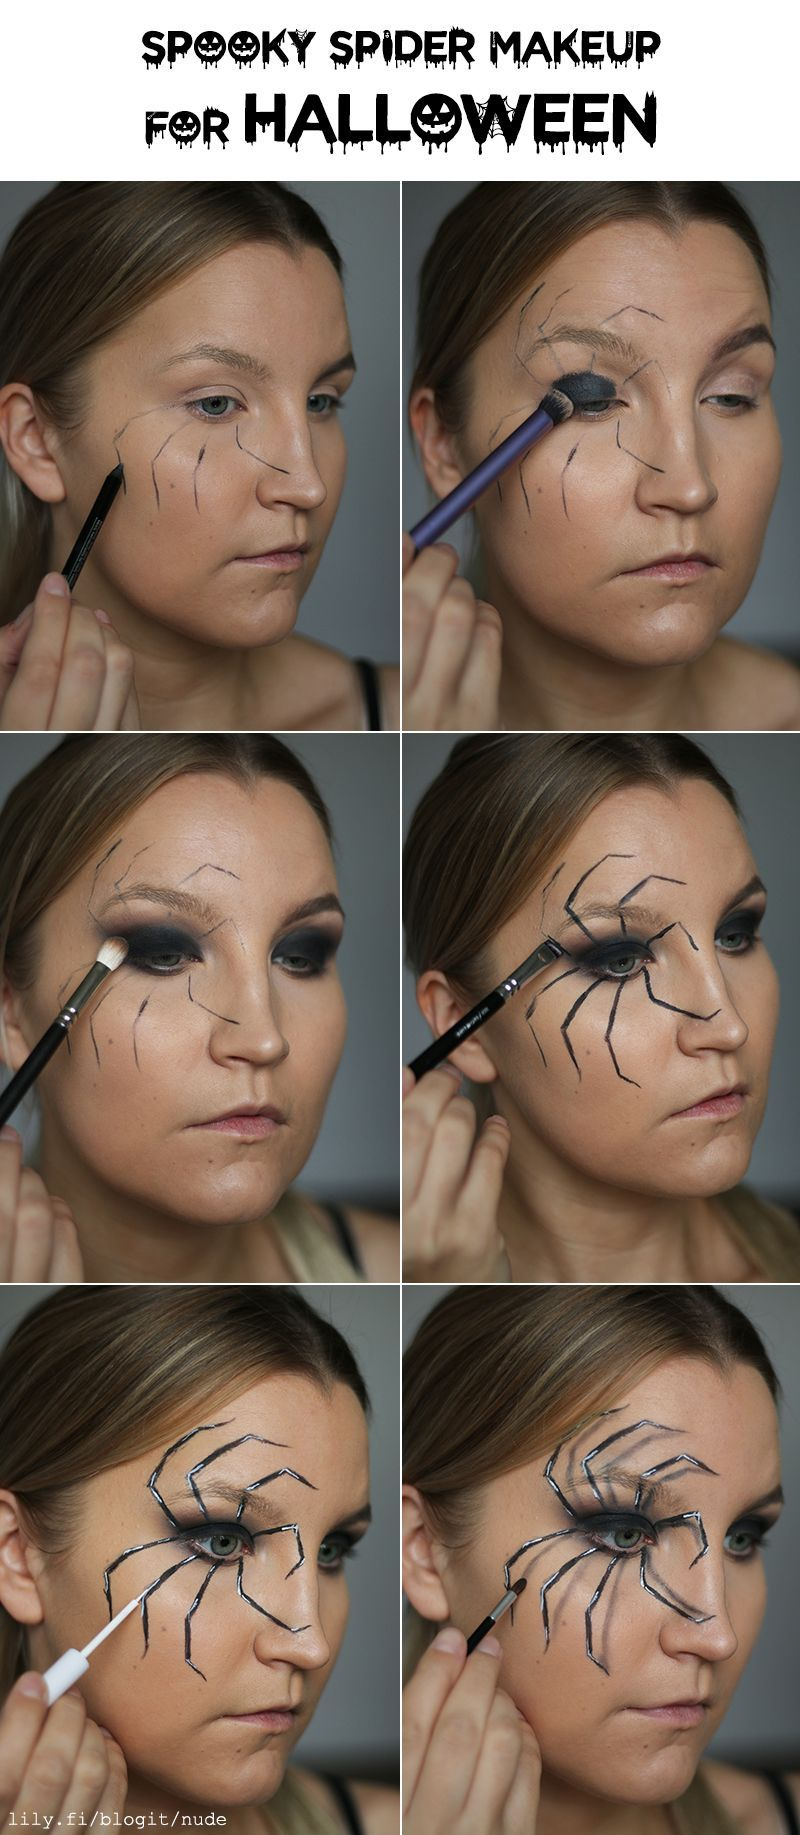 Easy spider makeup for Halloween. All you need is black and white eyeliner, black eyeshadow and a mascara. #fallmakeuplooks